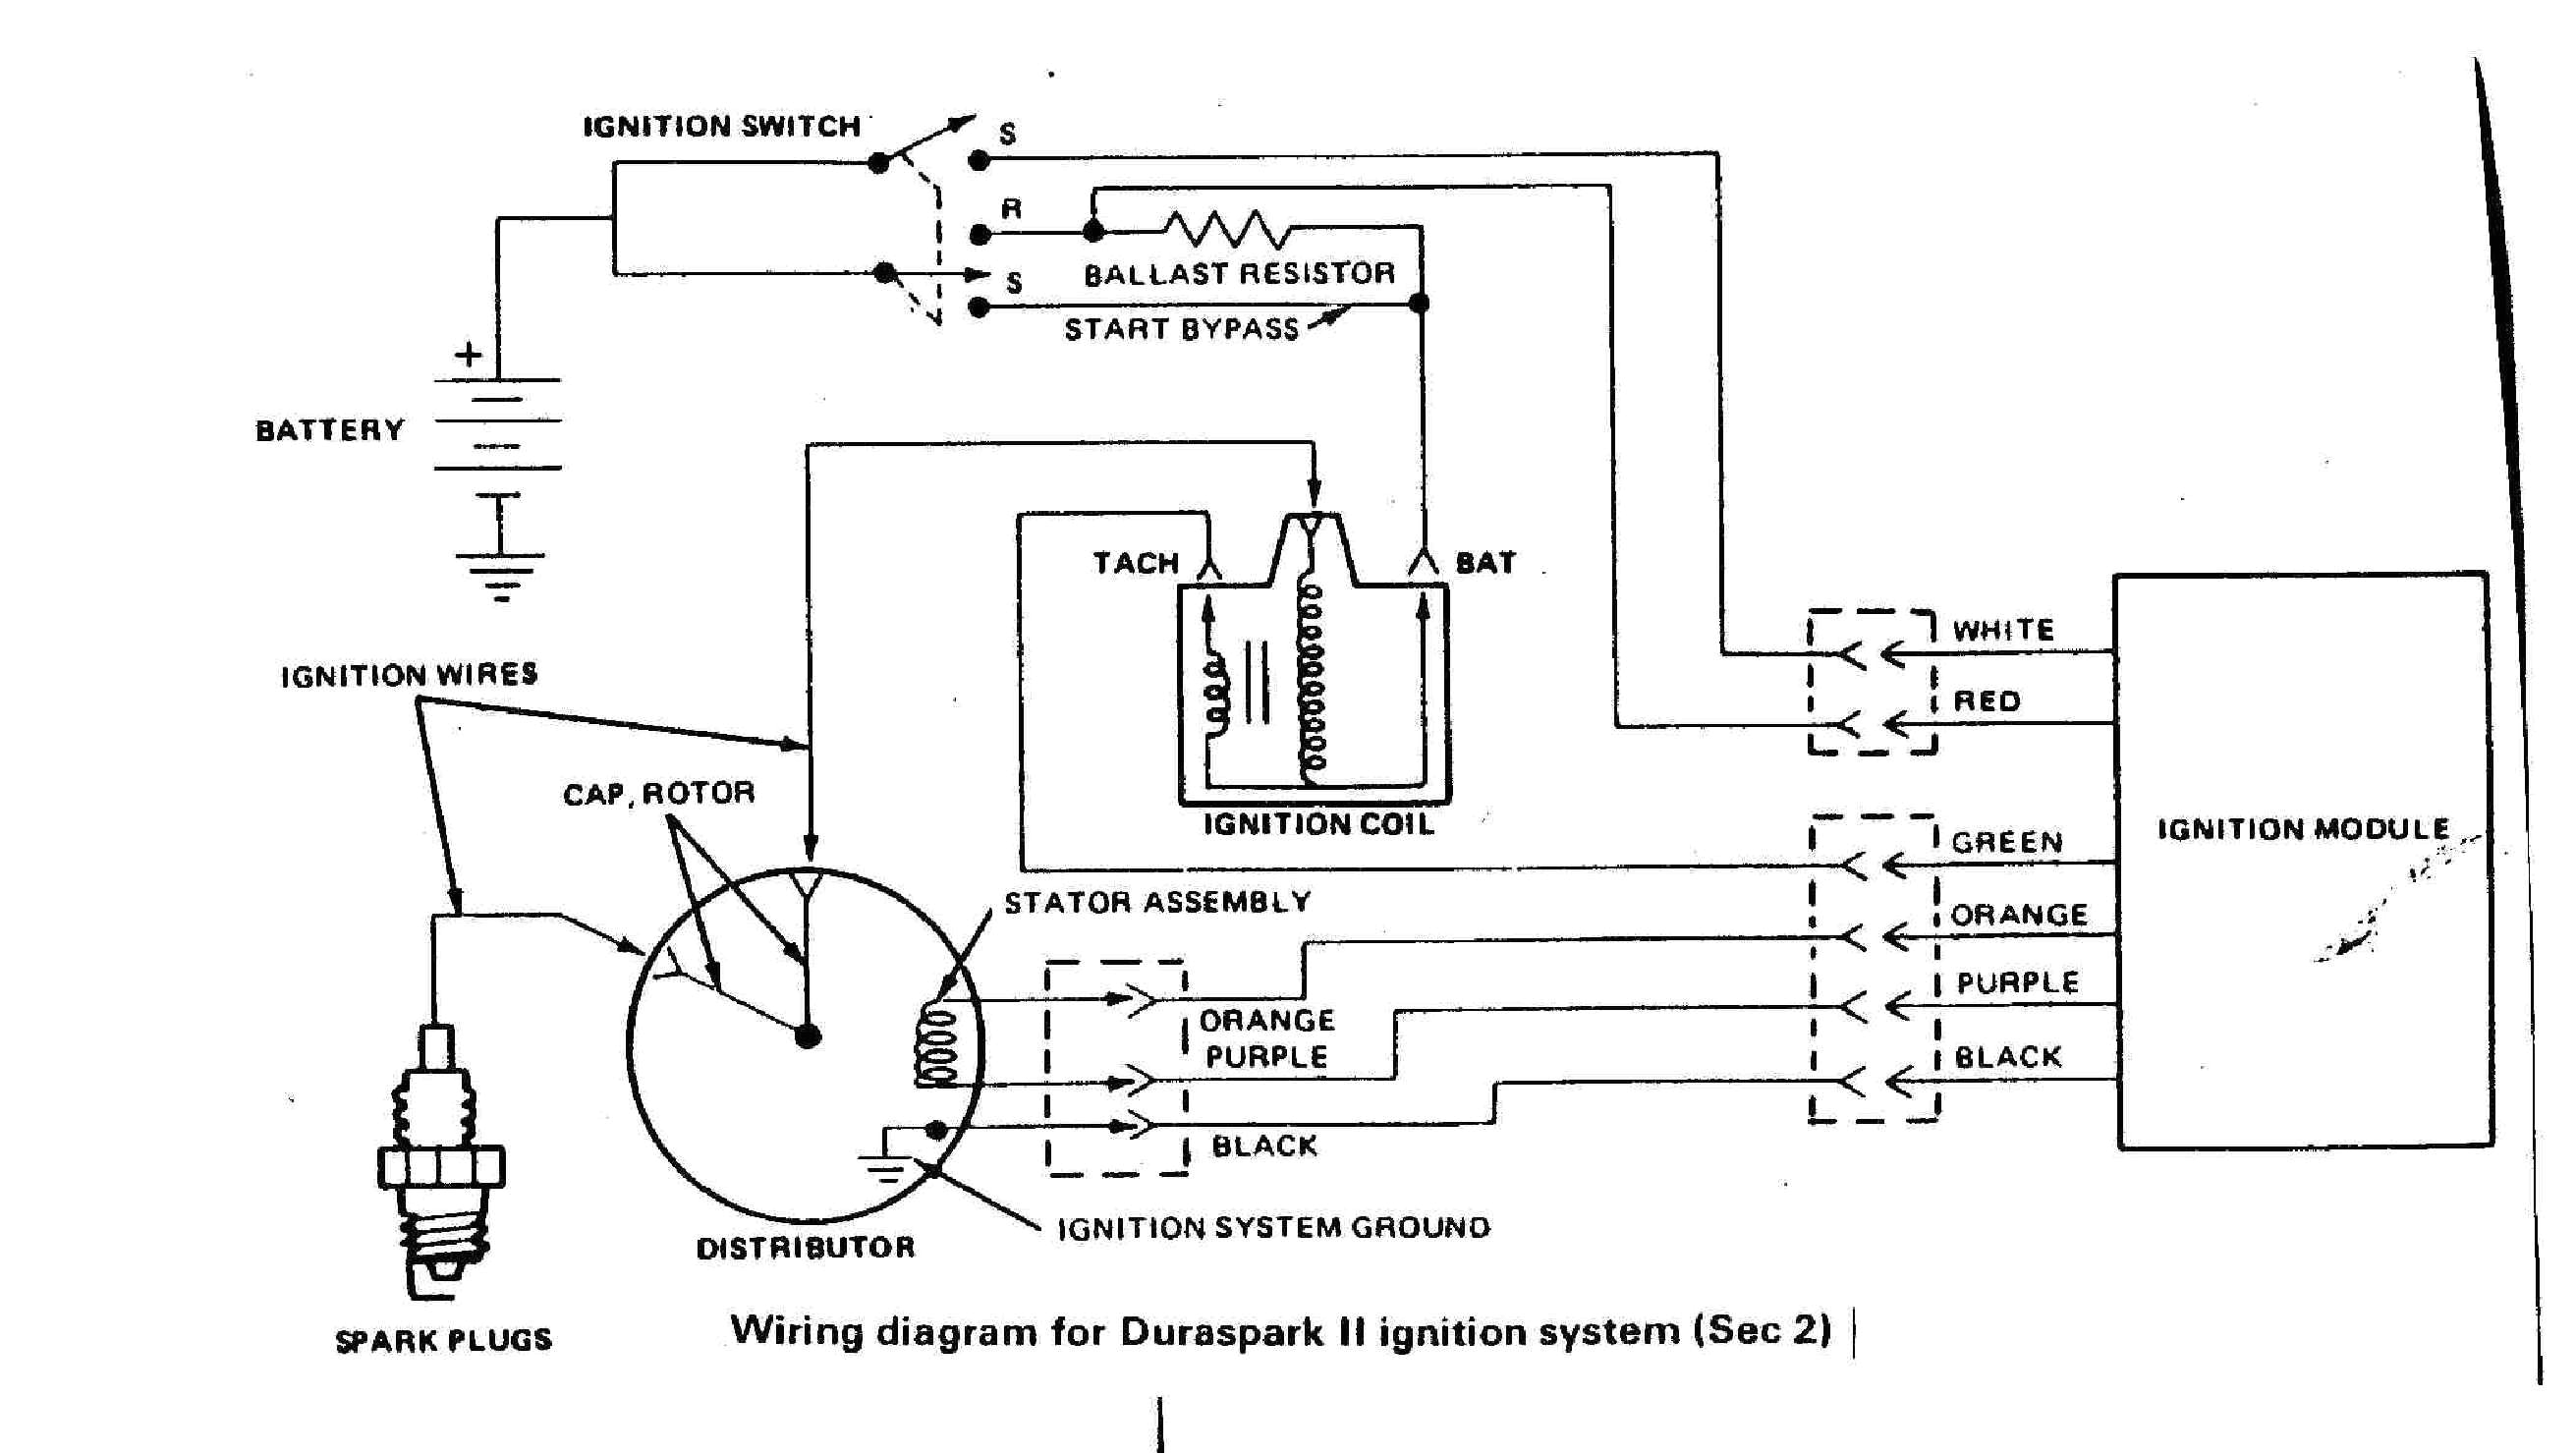 ford pinto wiring schema wiring diagram 1979 ford pinto wiring diagram wiring diagram blog ford pinto